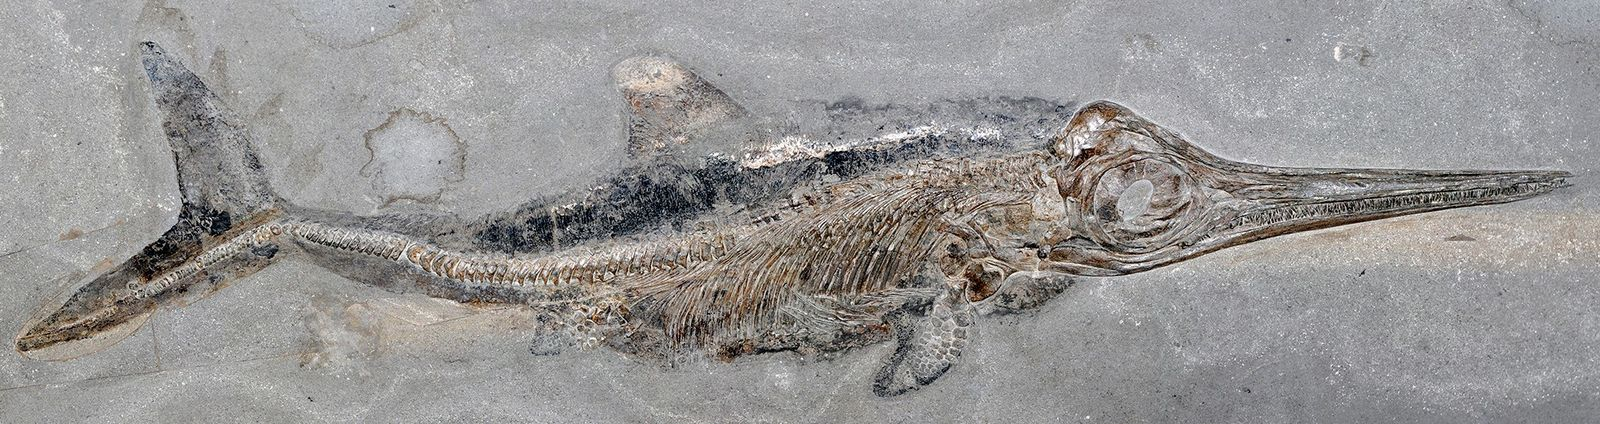 Germany's Holzmaden shale quarries have yielded many 180-million-year-old marine fossils, including thousands of dolphin-like reptiles called ...